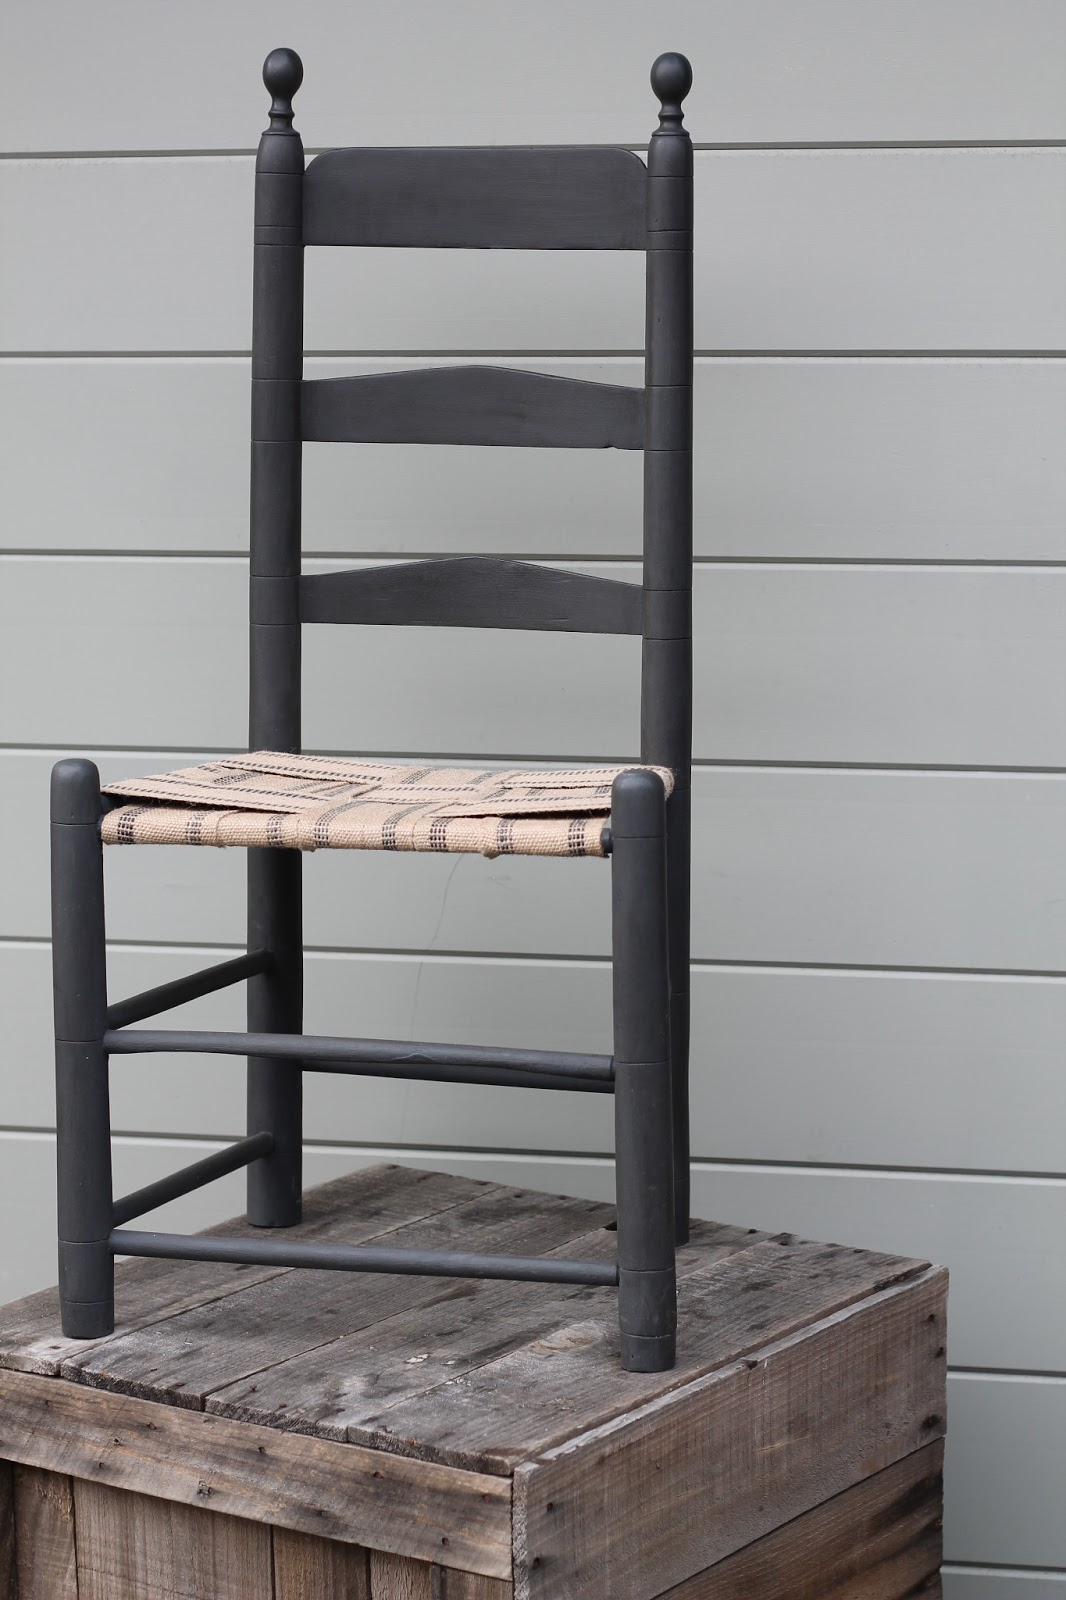 The Seat On This Solid Wood, Well Made Ladder Back Chair Had A Tattered  Rush Seat When We Found It. We Removed The Rush, Painted The Chair Black,  Used A ...